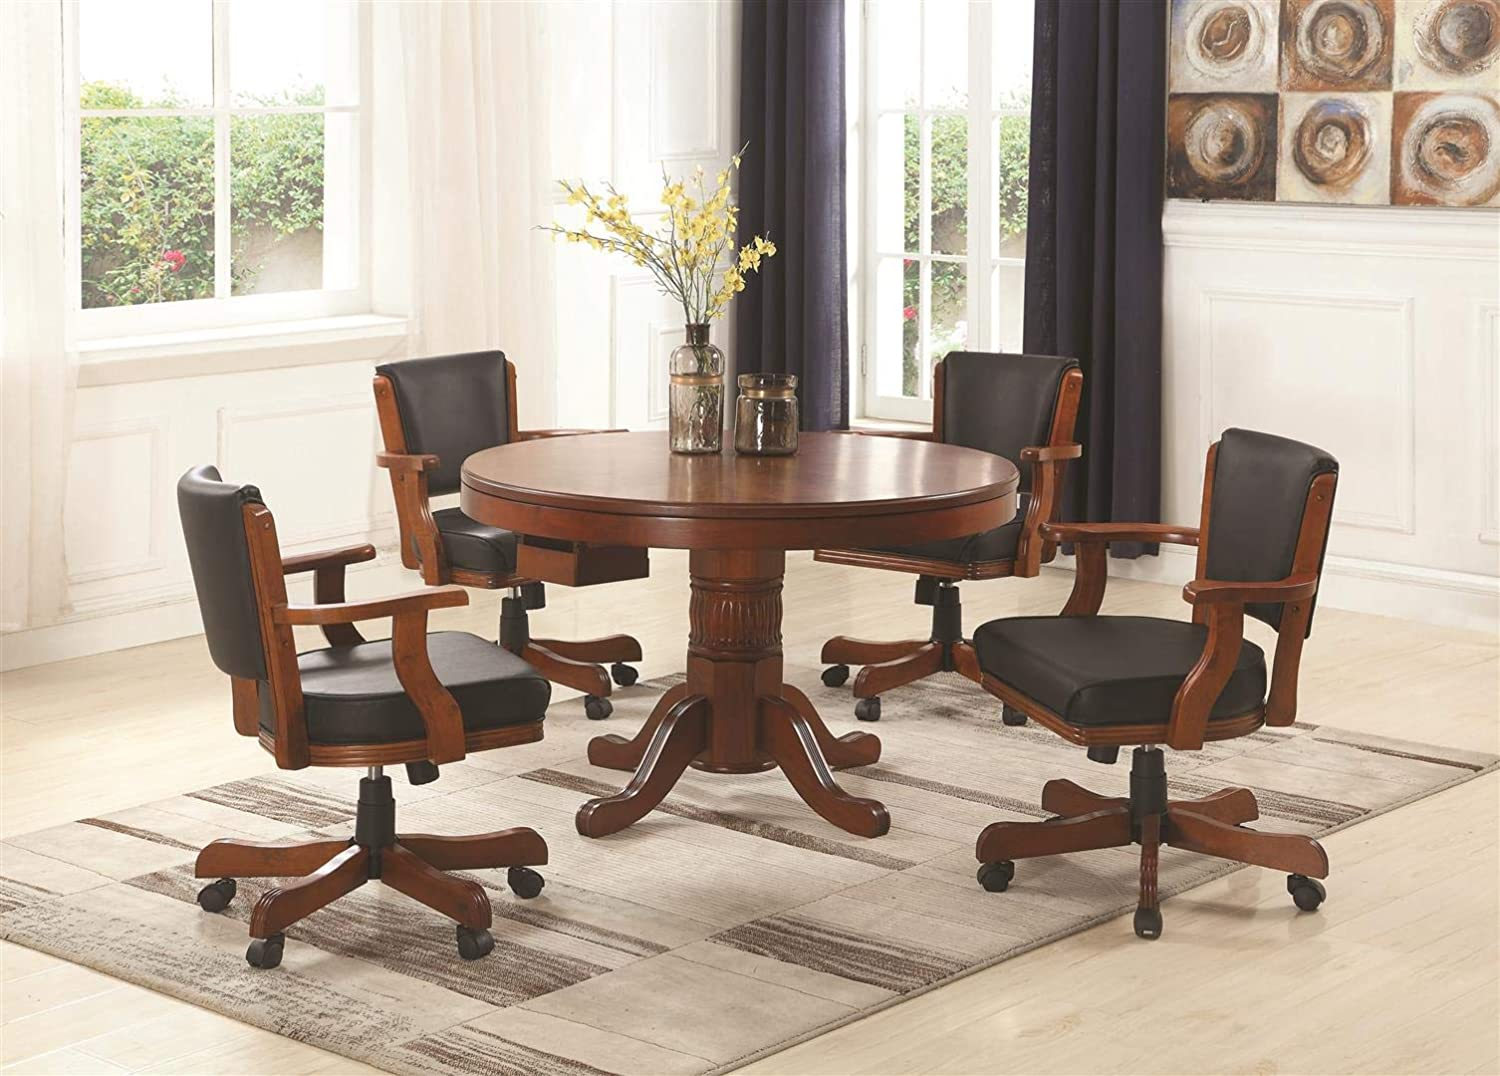 Coaster Home Furnishings Mitchell 5-Piece Game Table Dining Set Merlot and Black